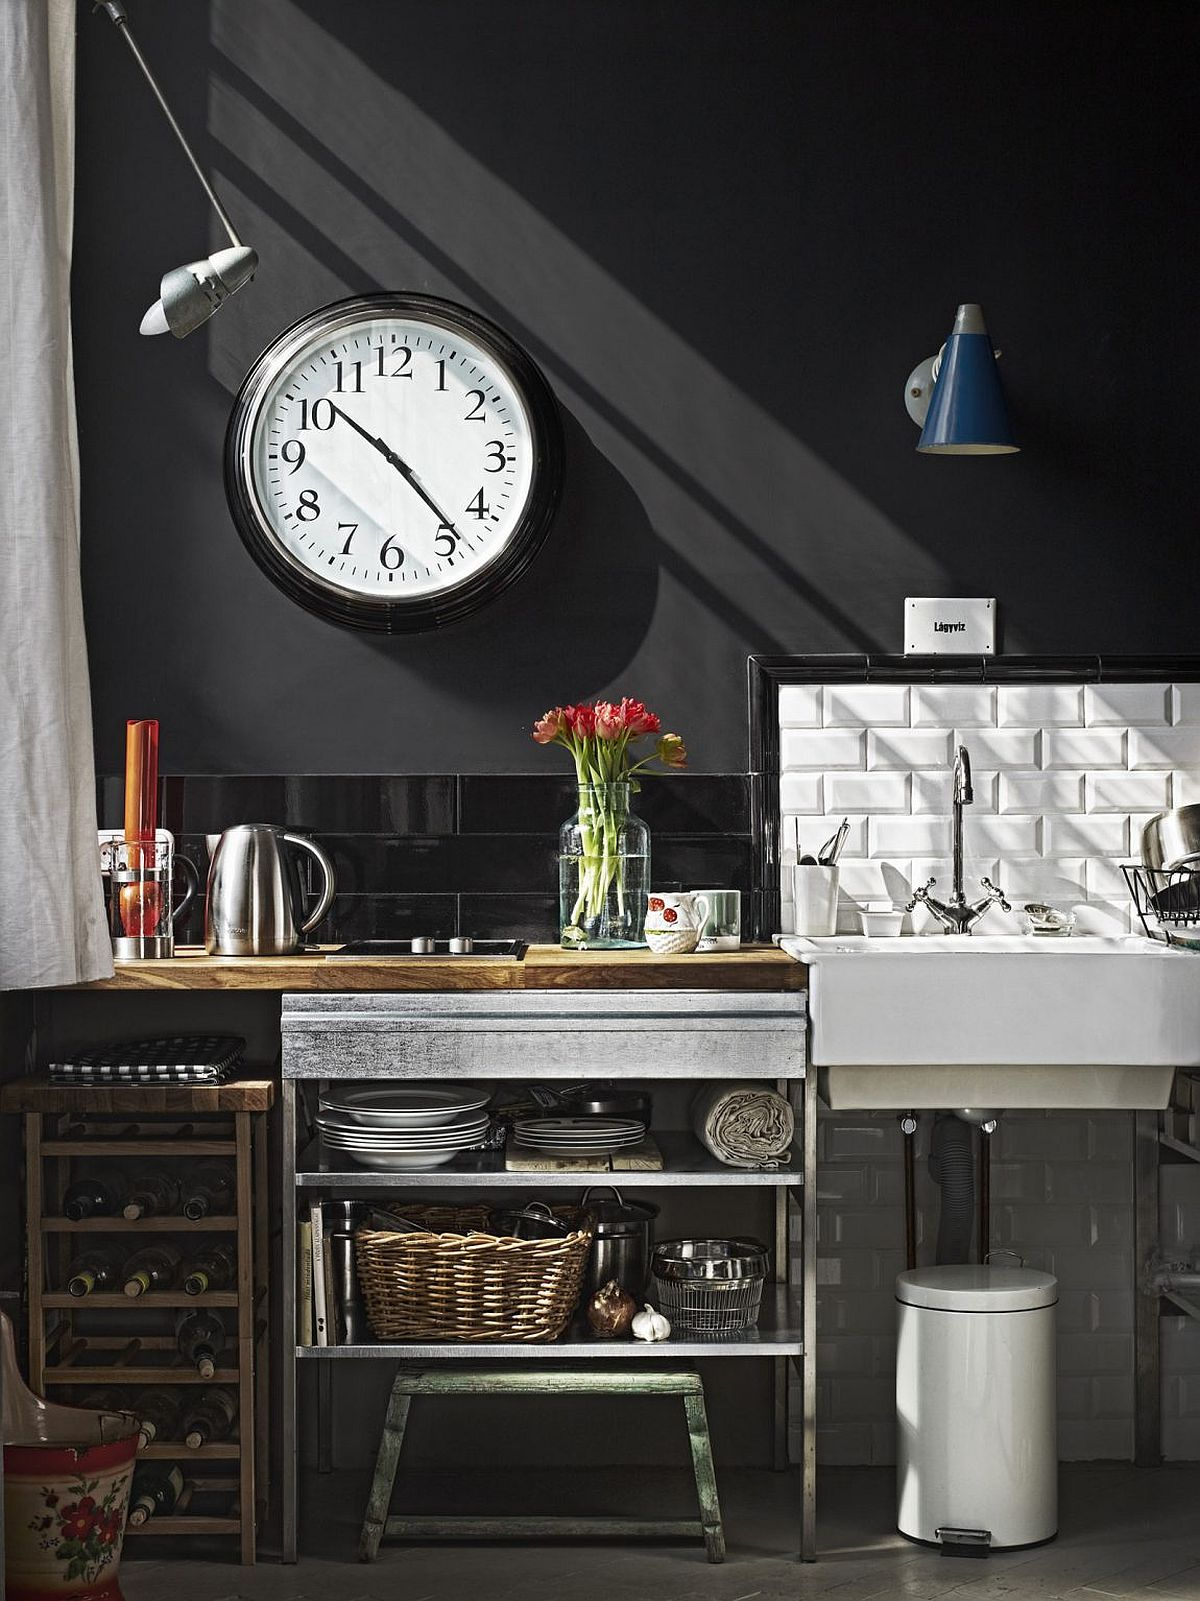 Amazingly tiny kitchenette in corner for vintage industrial loft in Budapest